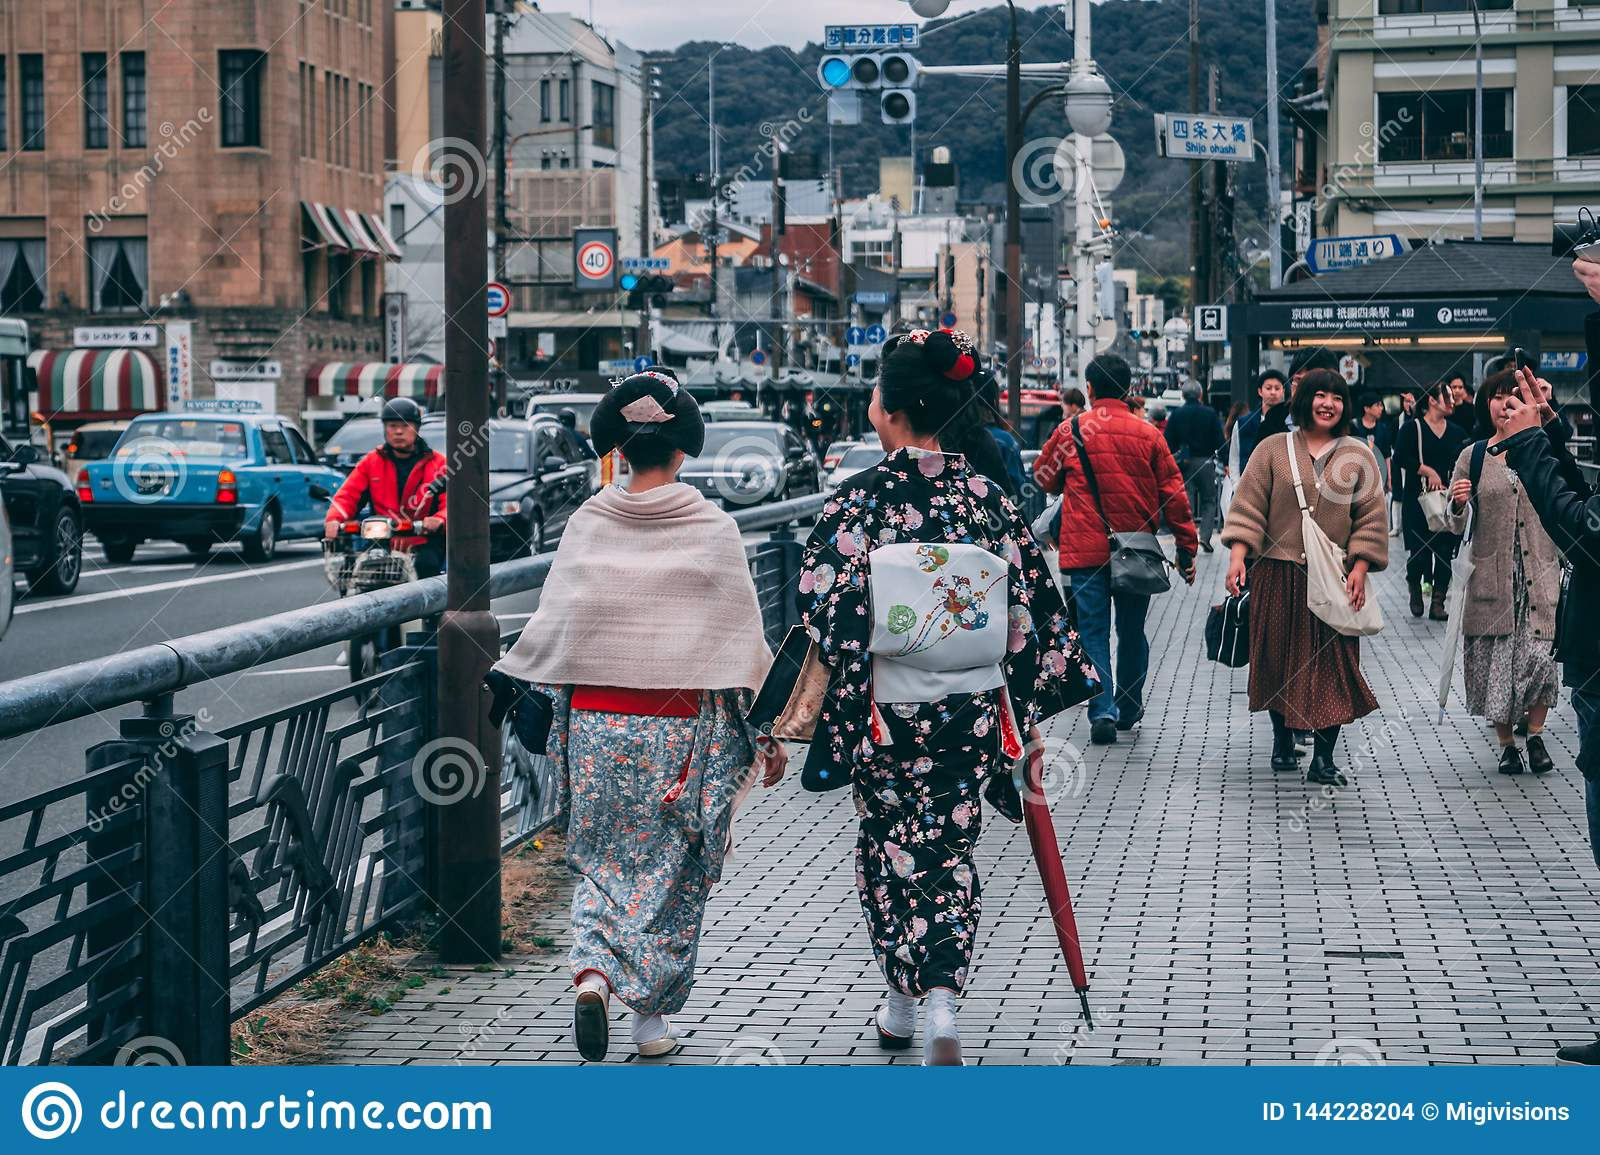 Ladies in traditional Japanese outfits walking the Kyoto streets